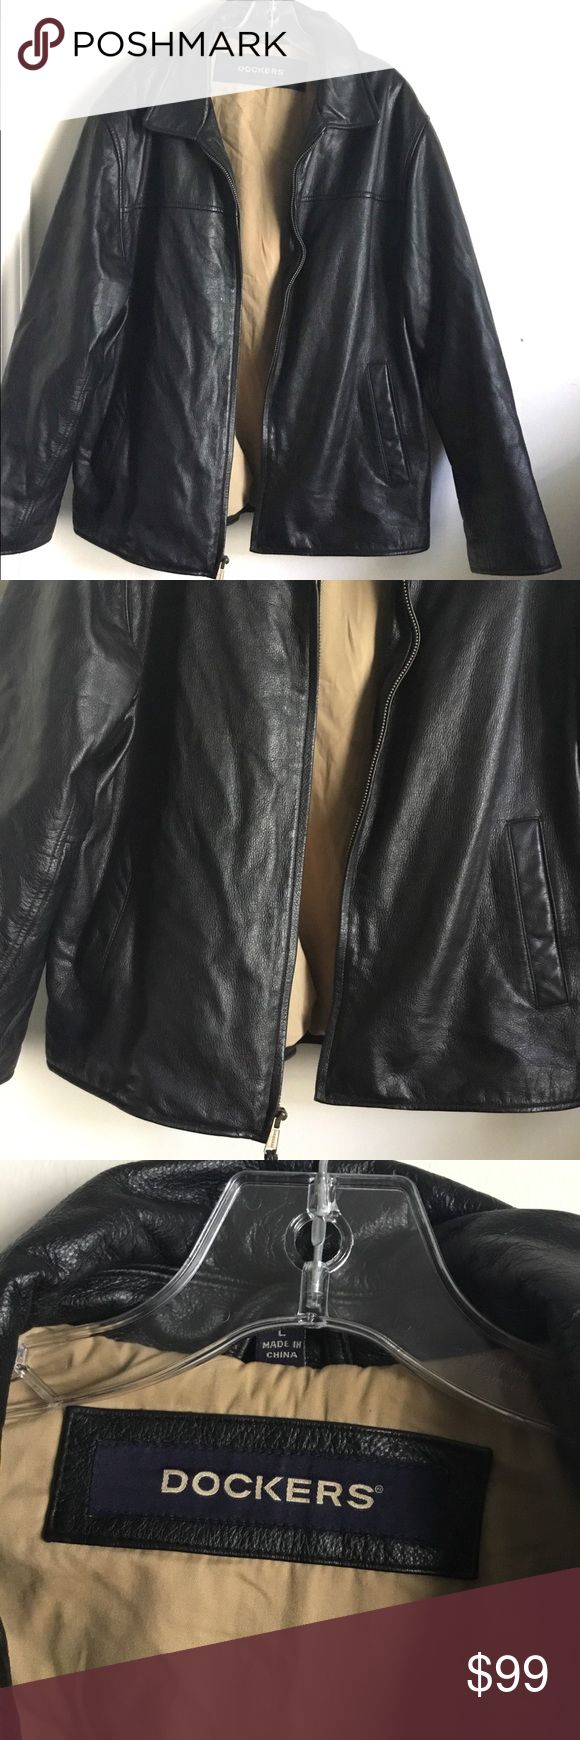 Dockers Mens Leather Jacket Thick Lined Large Heavy Very